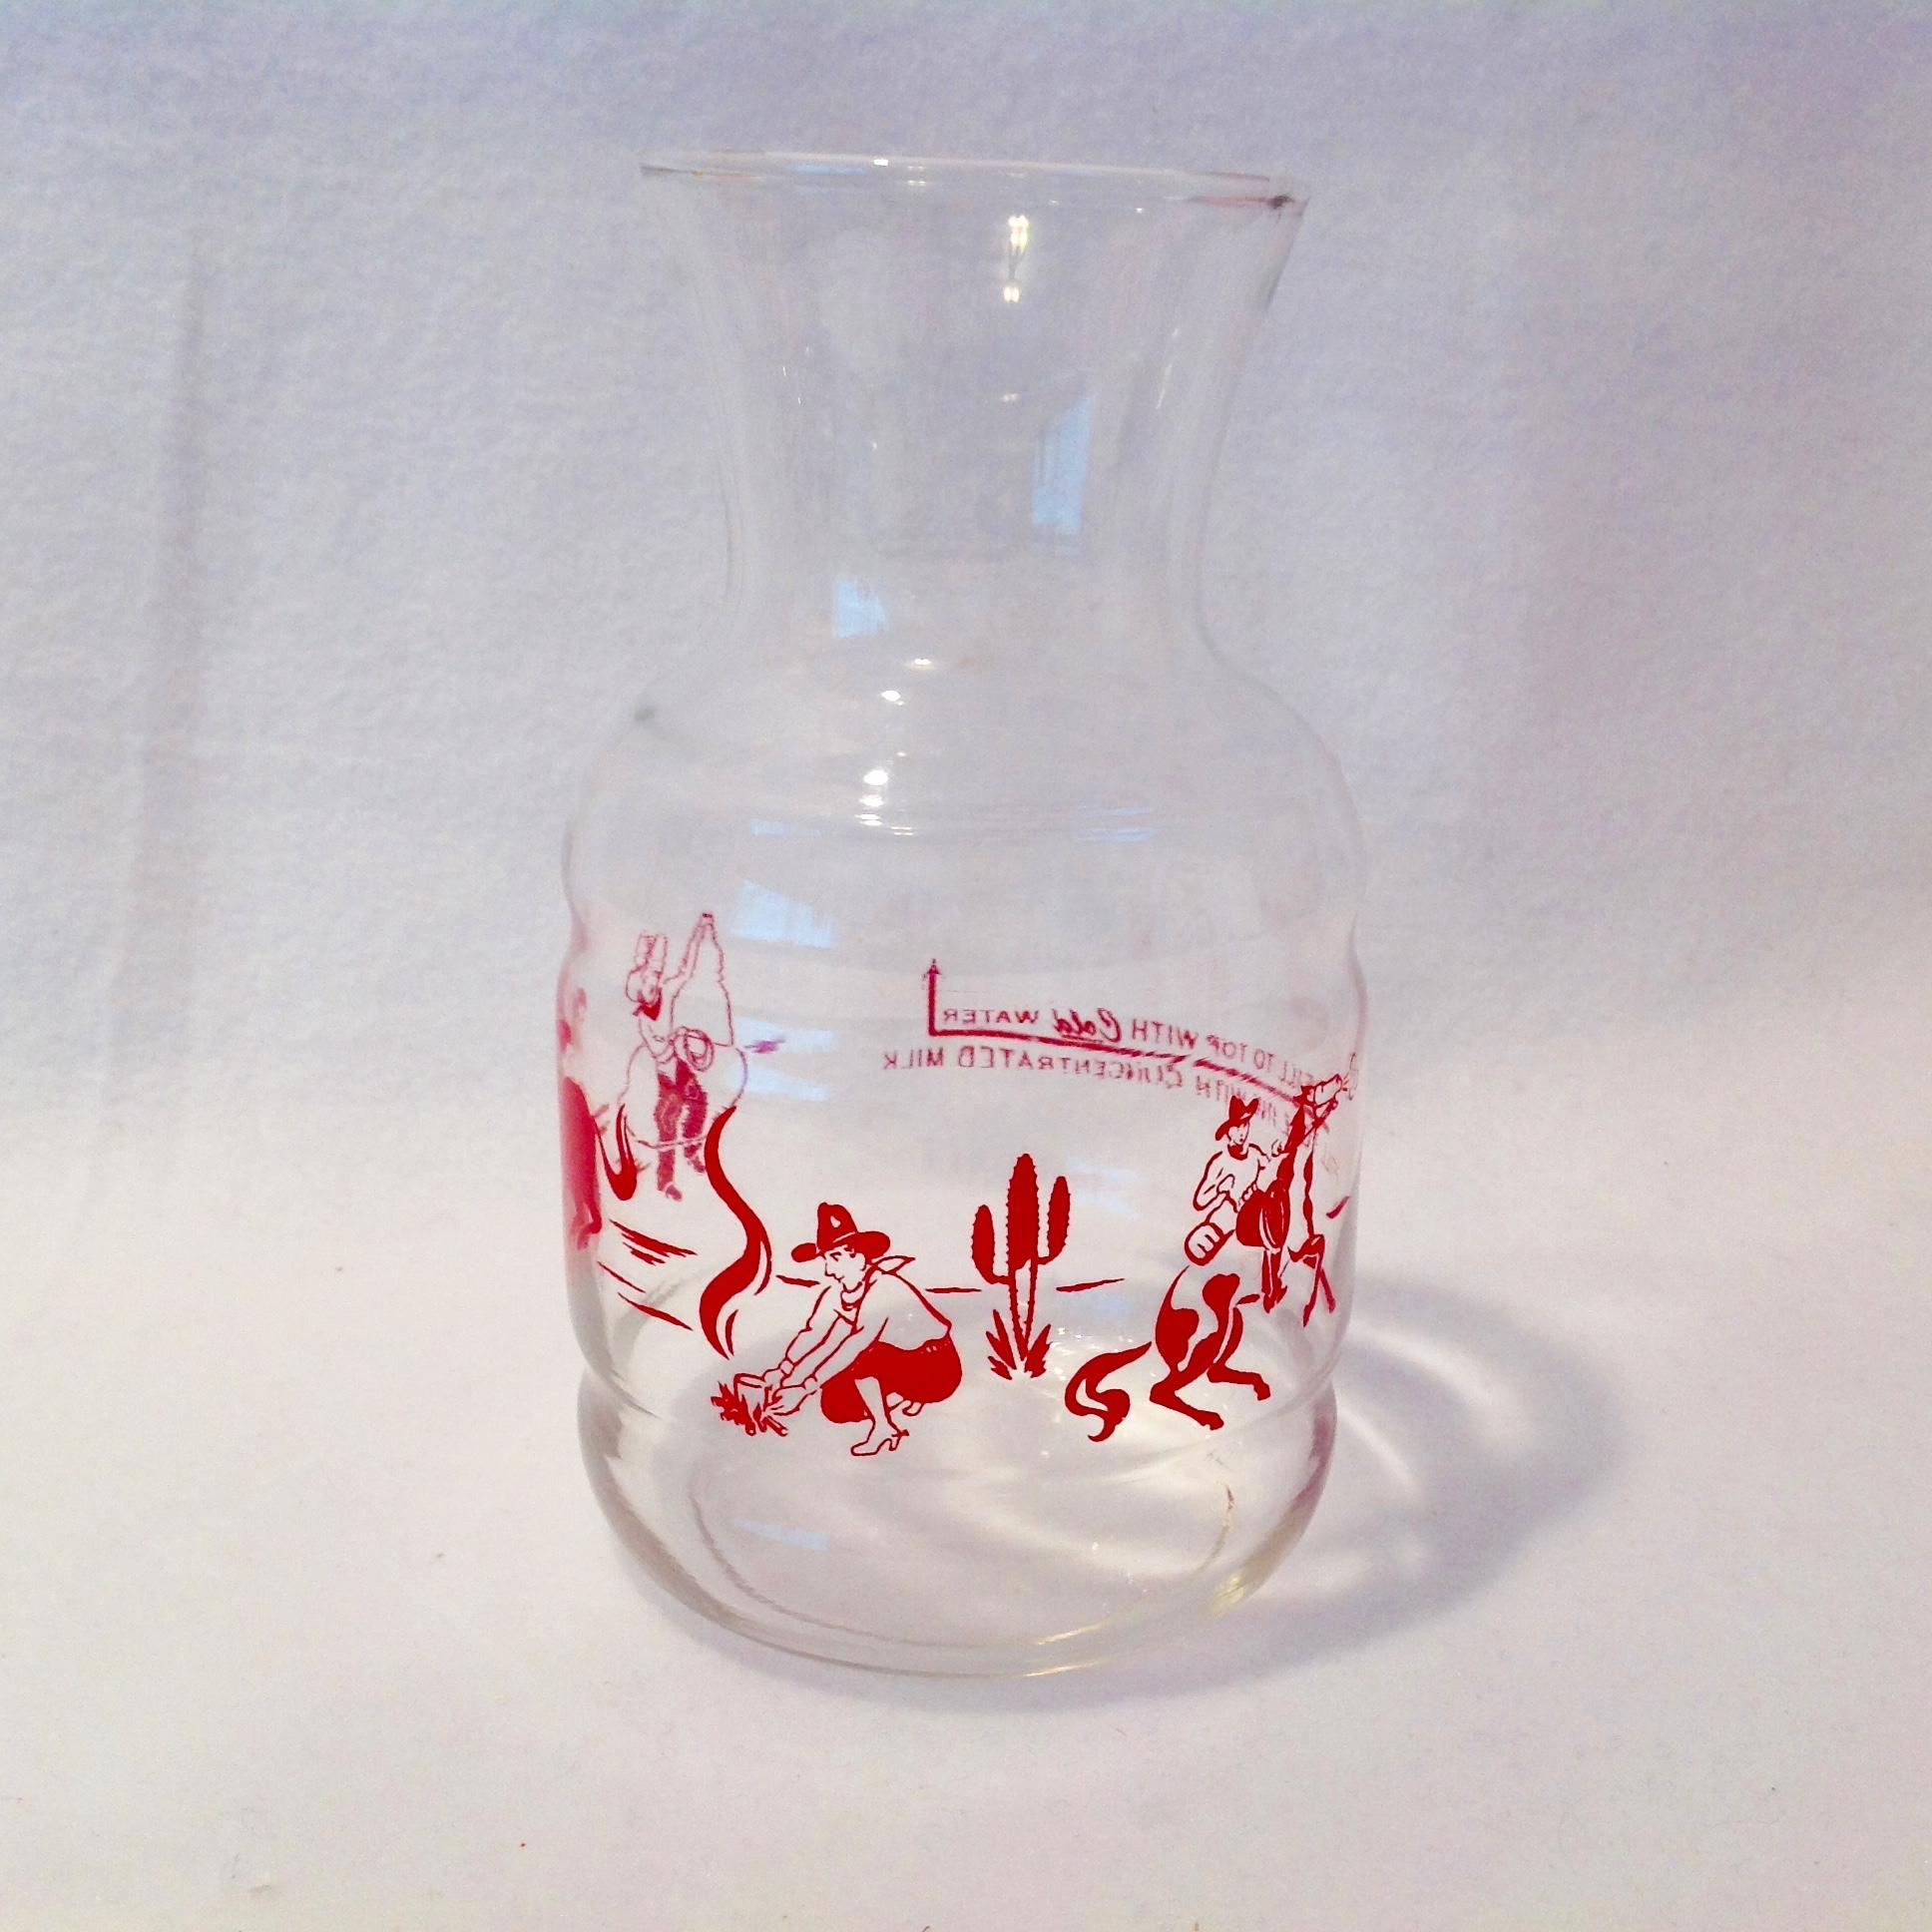 Red Cowboys and Horses Glass Bottle Concentrated Milk Circa 1950s